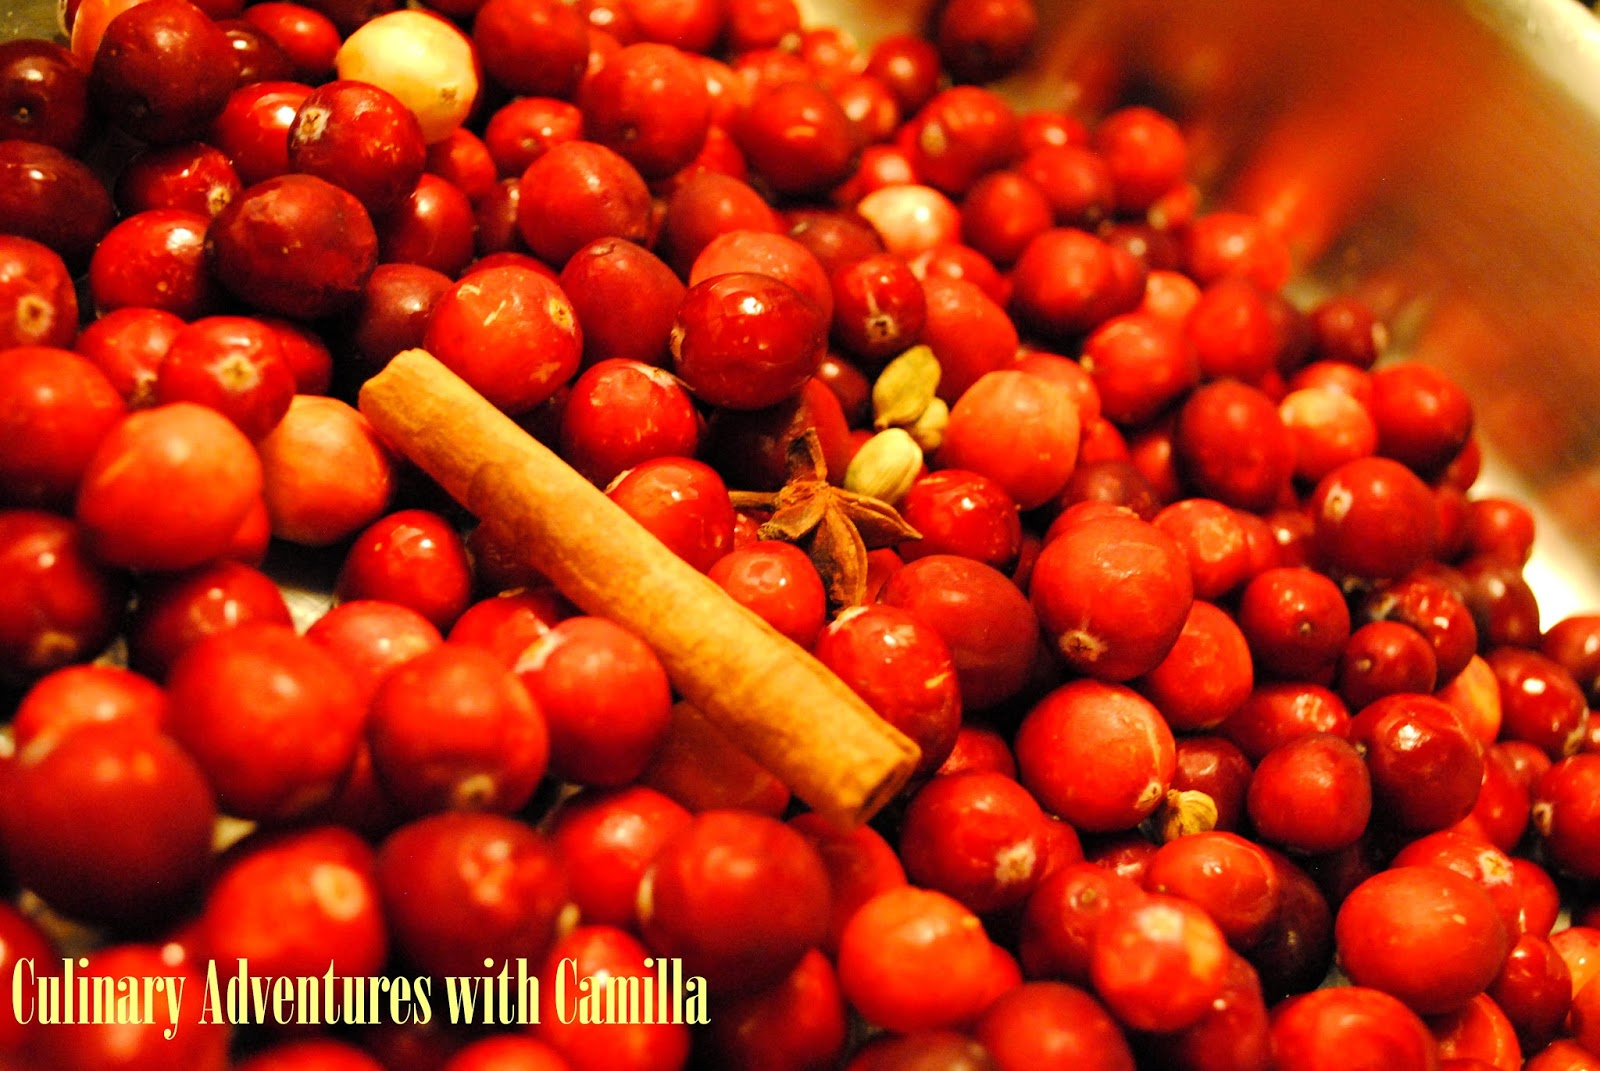 Culinary Adventures with Camilla: Boozy Spiced Cranberry Sauce